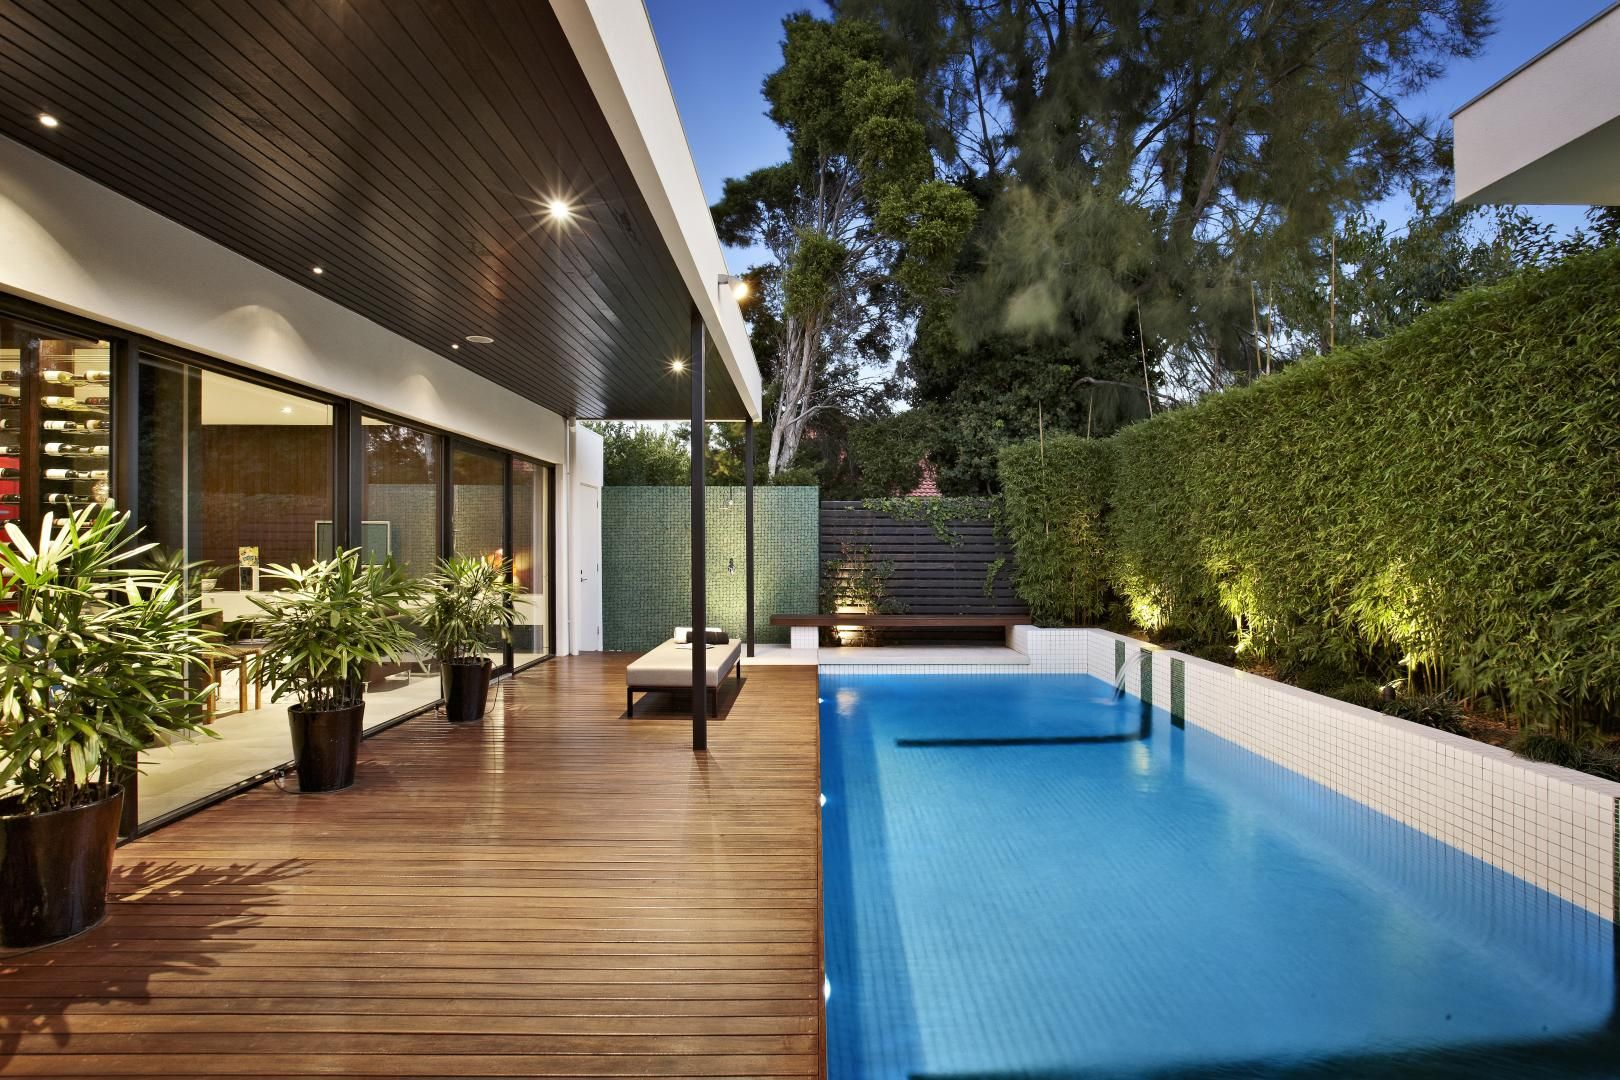 Small Backyard Designs Australia relaxing outdoor space of a house on balaclava road, australia